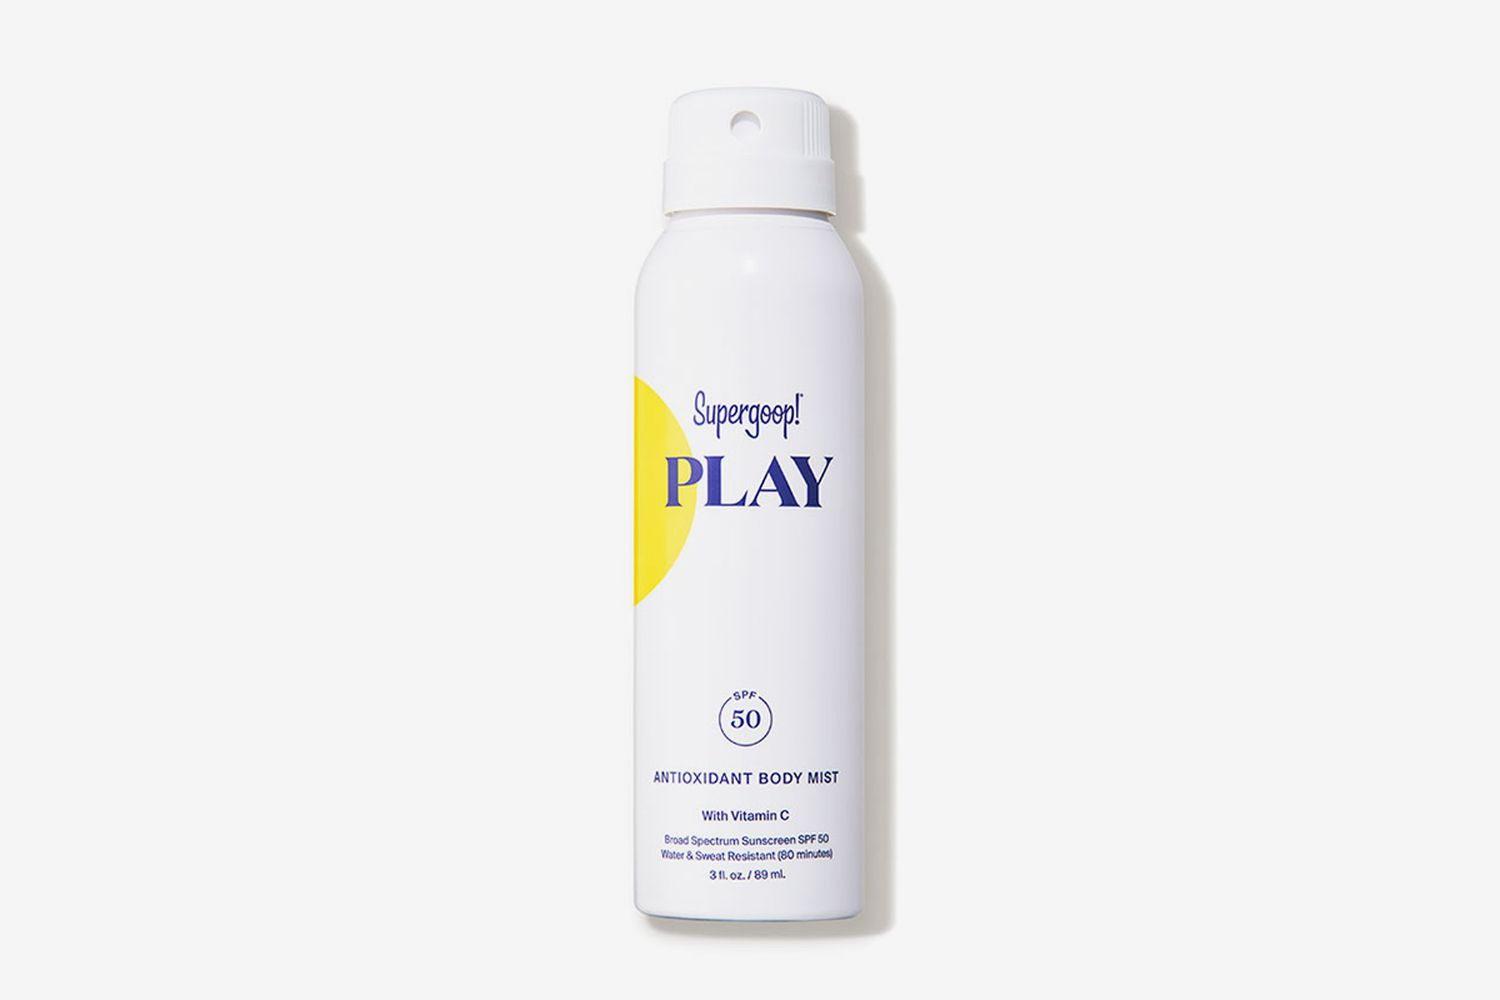 PLAY Antioxidant Body Mist SPF 50 with Vitamin C